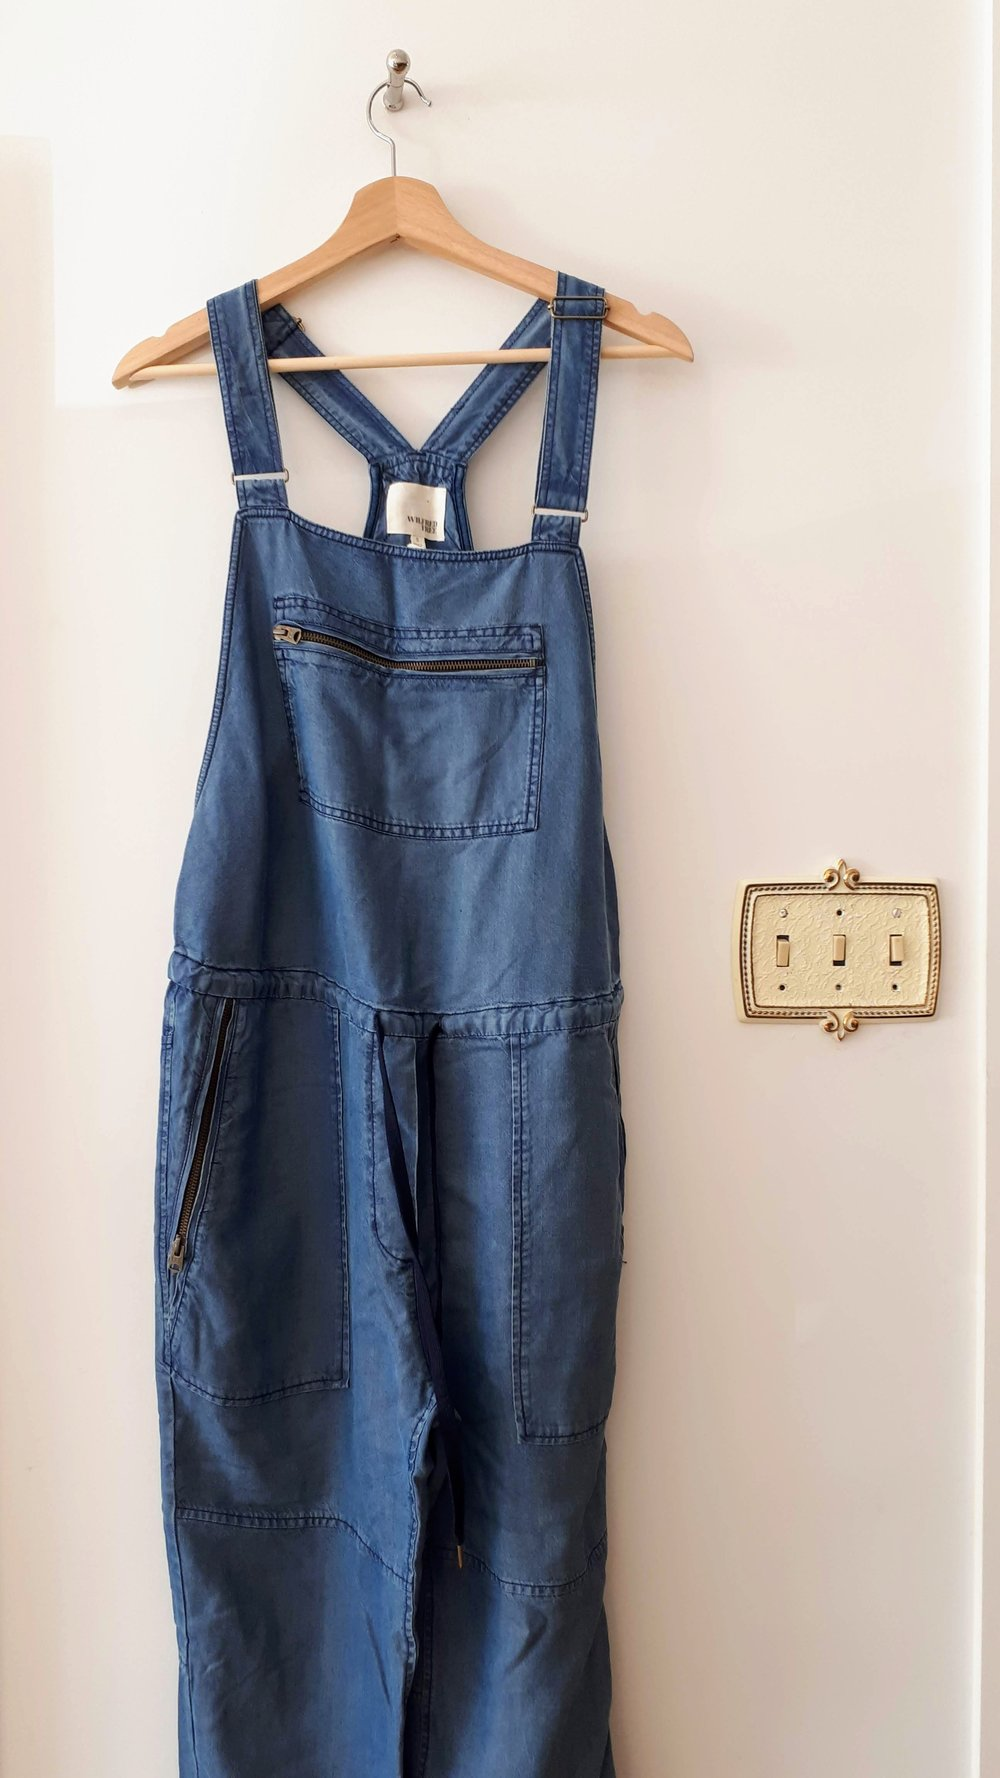 Wilfred overalls; Size S, $46